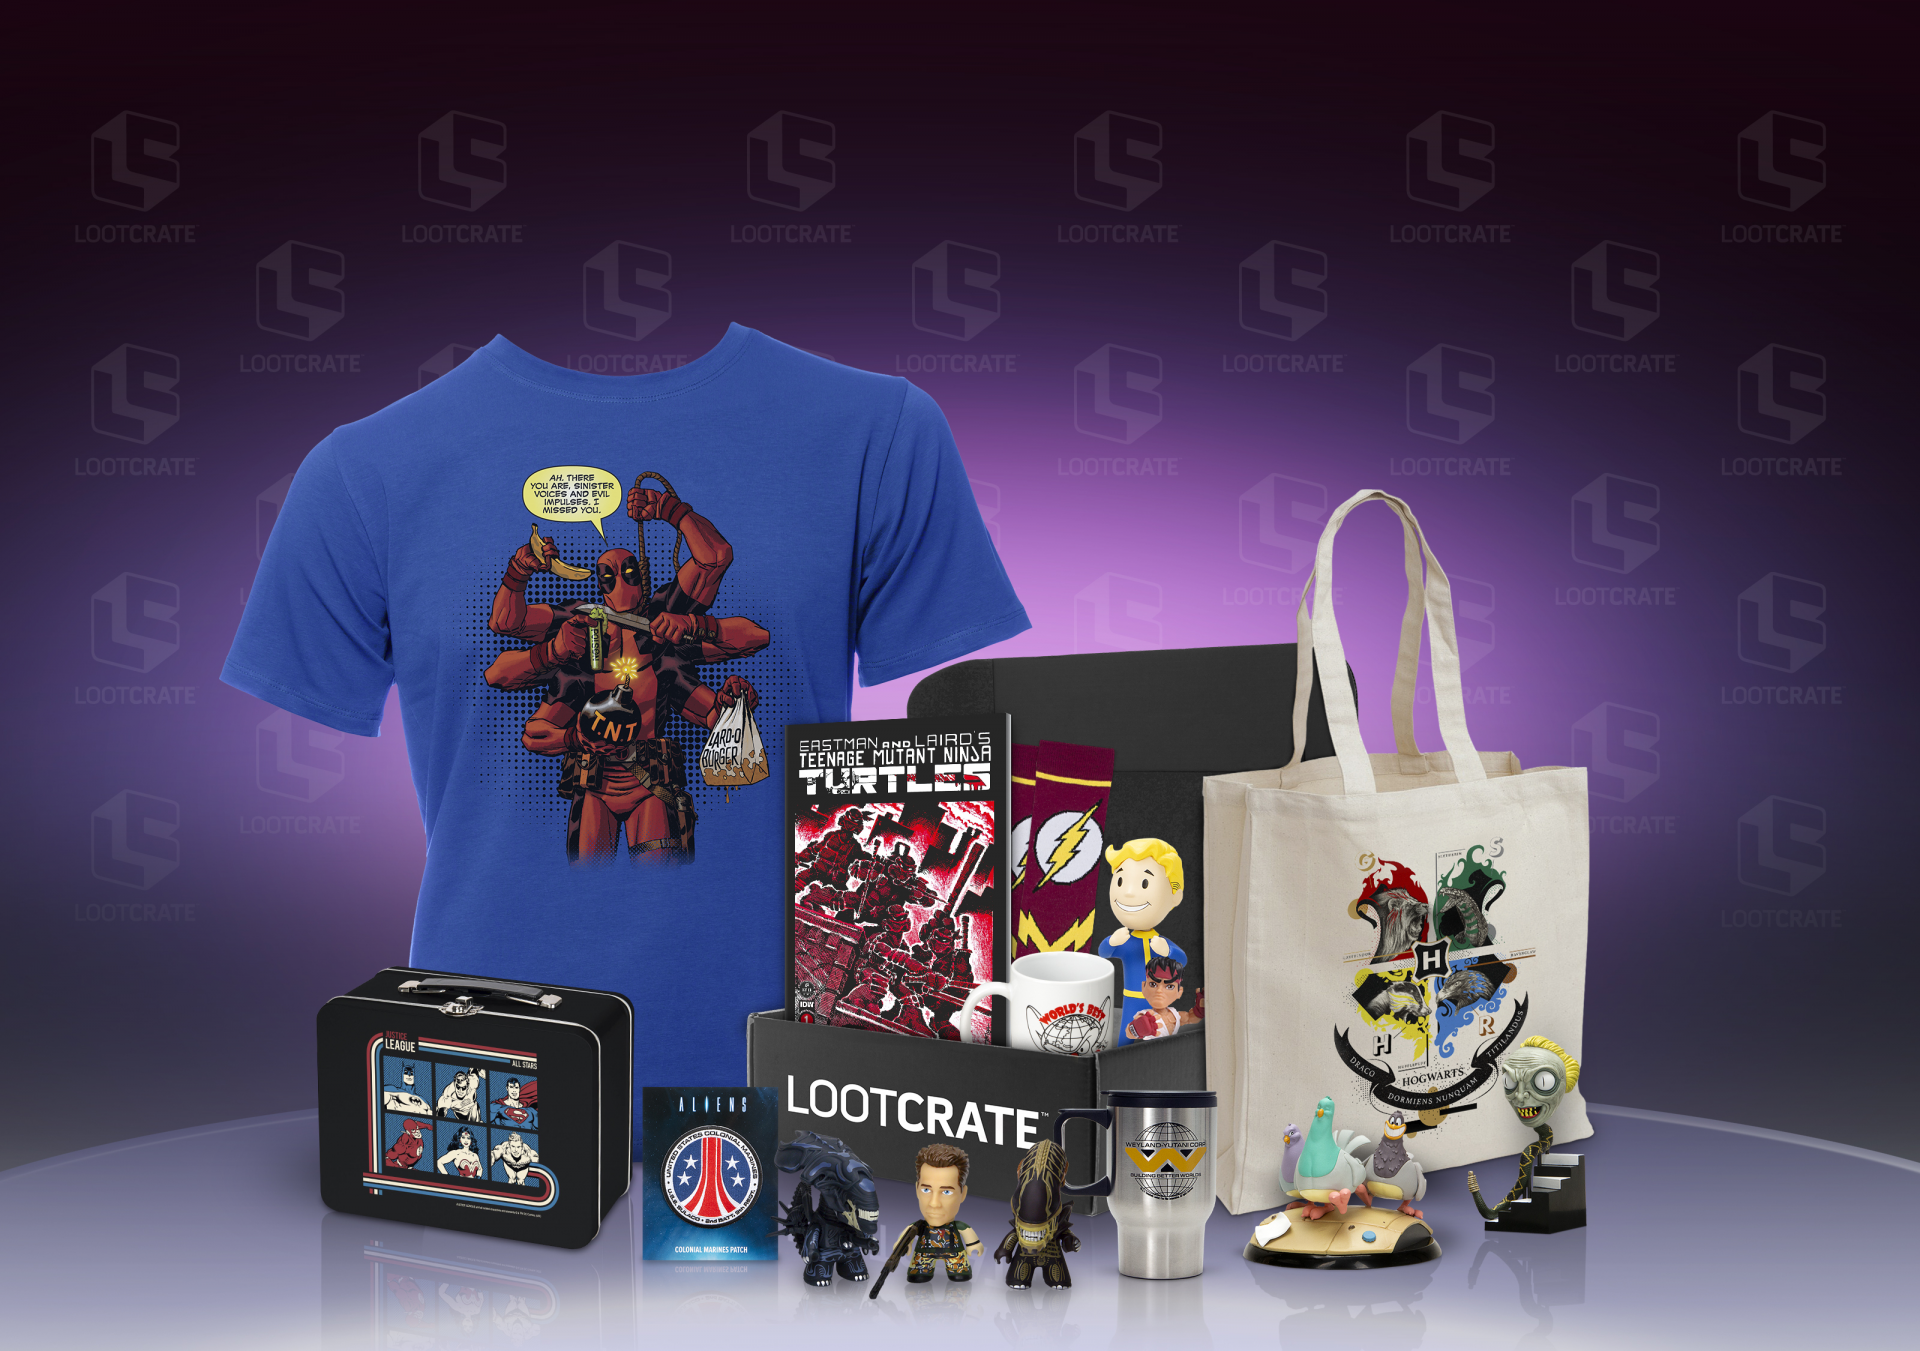 LOOTCRATE Offers Great Gifts This Holiday Season! - Dad of Divas